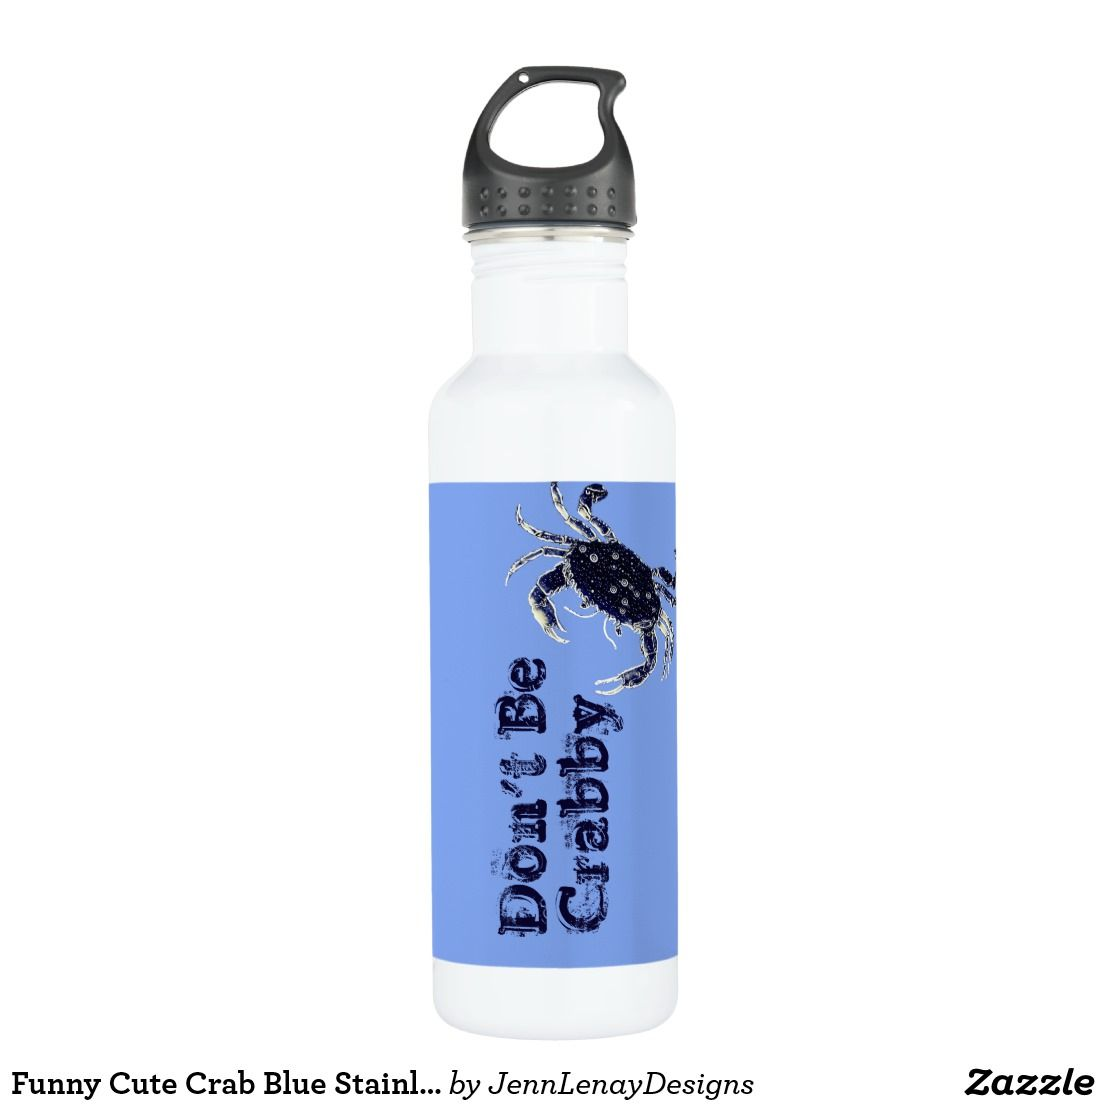 Funny Cute Crab Blue Stainless Steel Water Bottle Zazzle